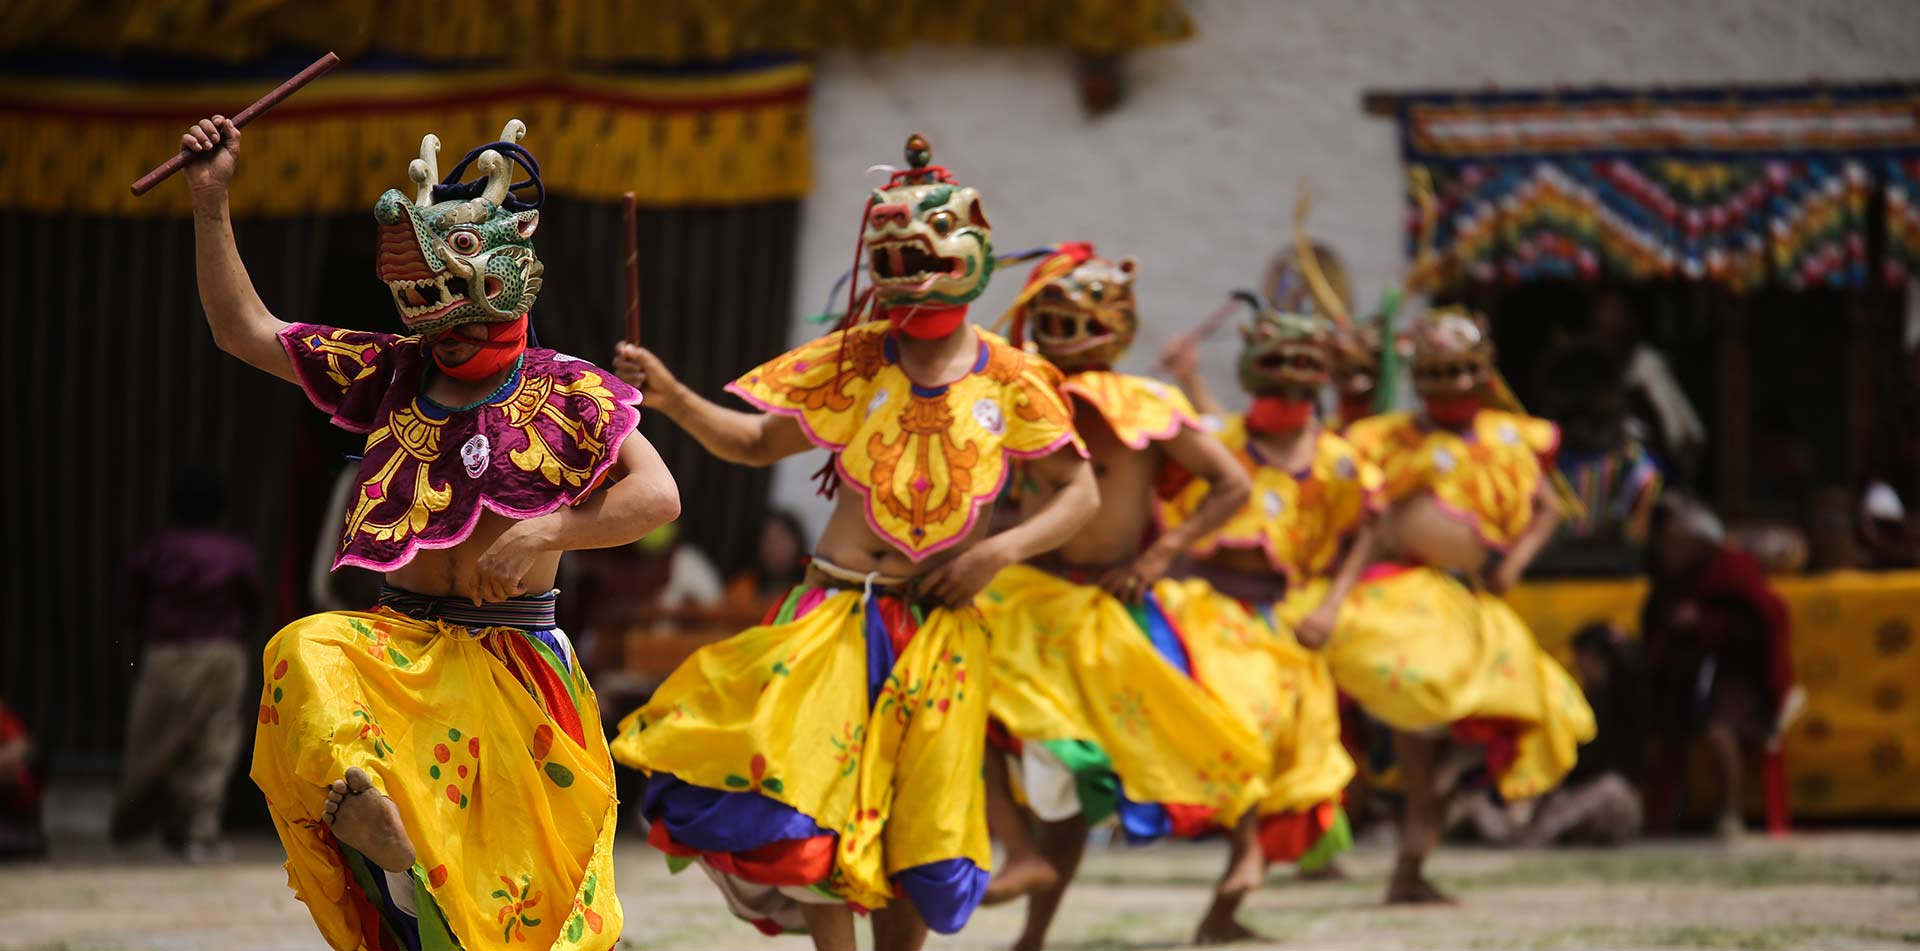 Asia Bhutan local dancers wearing traditional clothing and masks - luxury vacation destinations